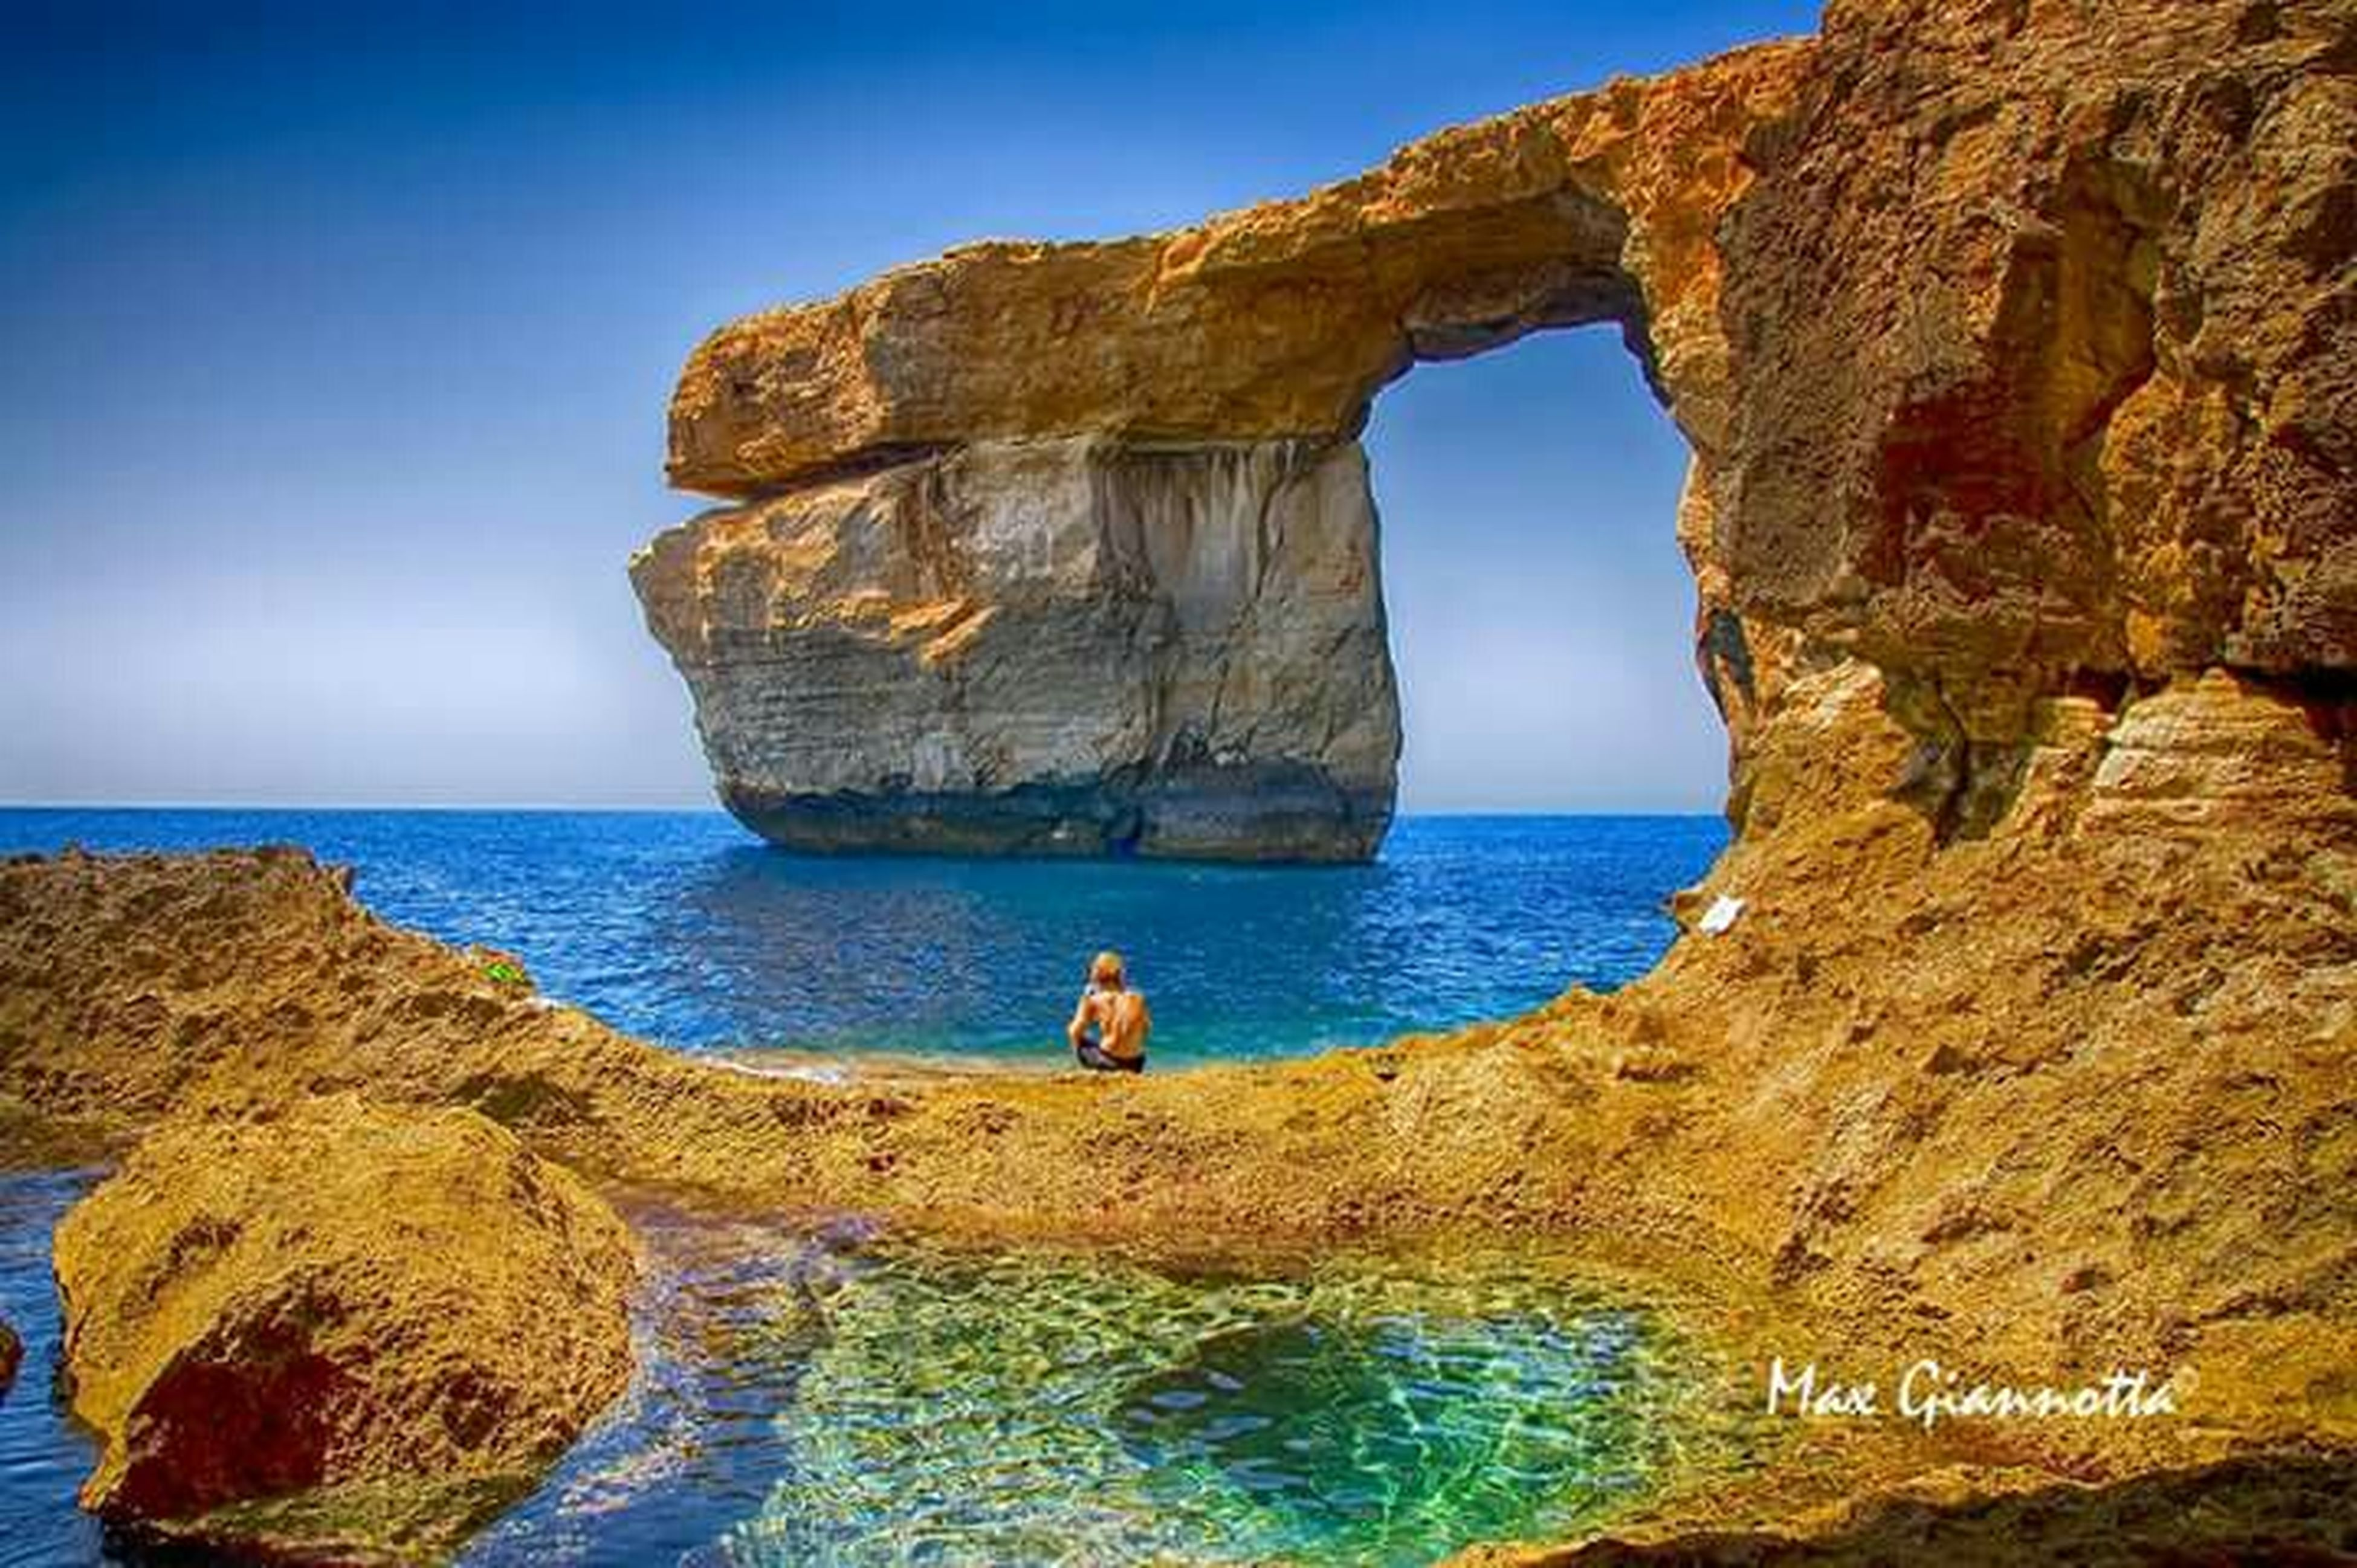 sea, water, horizon over water, blue, rock - object, rock formation, tranquility, clear sky, cliff, scenics, rock, tranquil scene, sky, nature, beauty in nature, sunlight, day, lifestyles